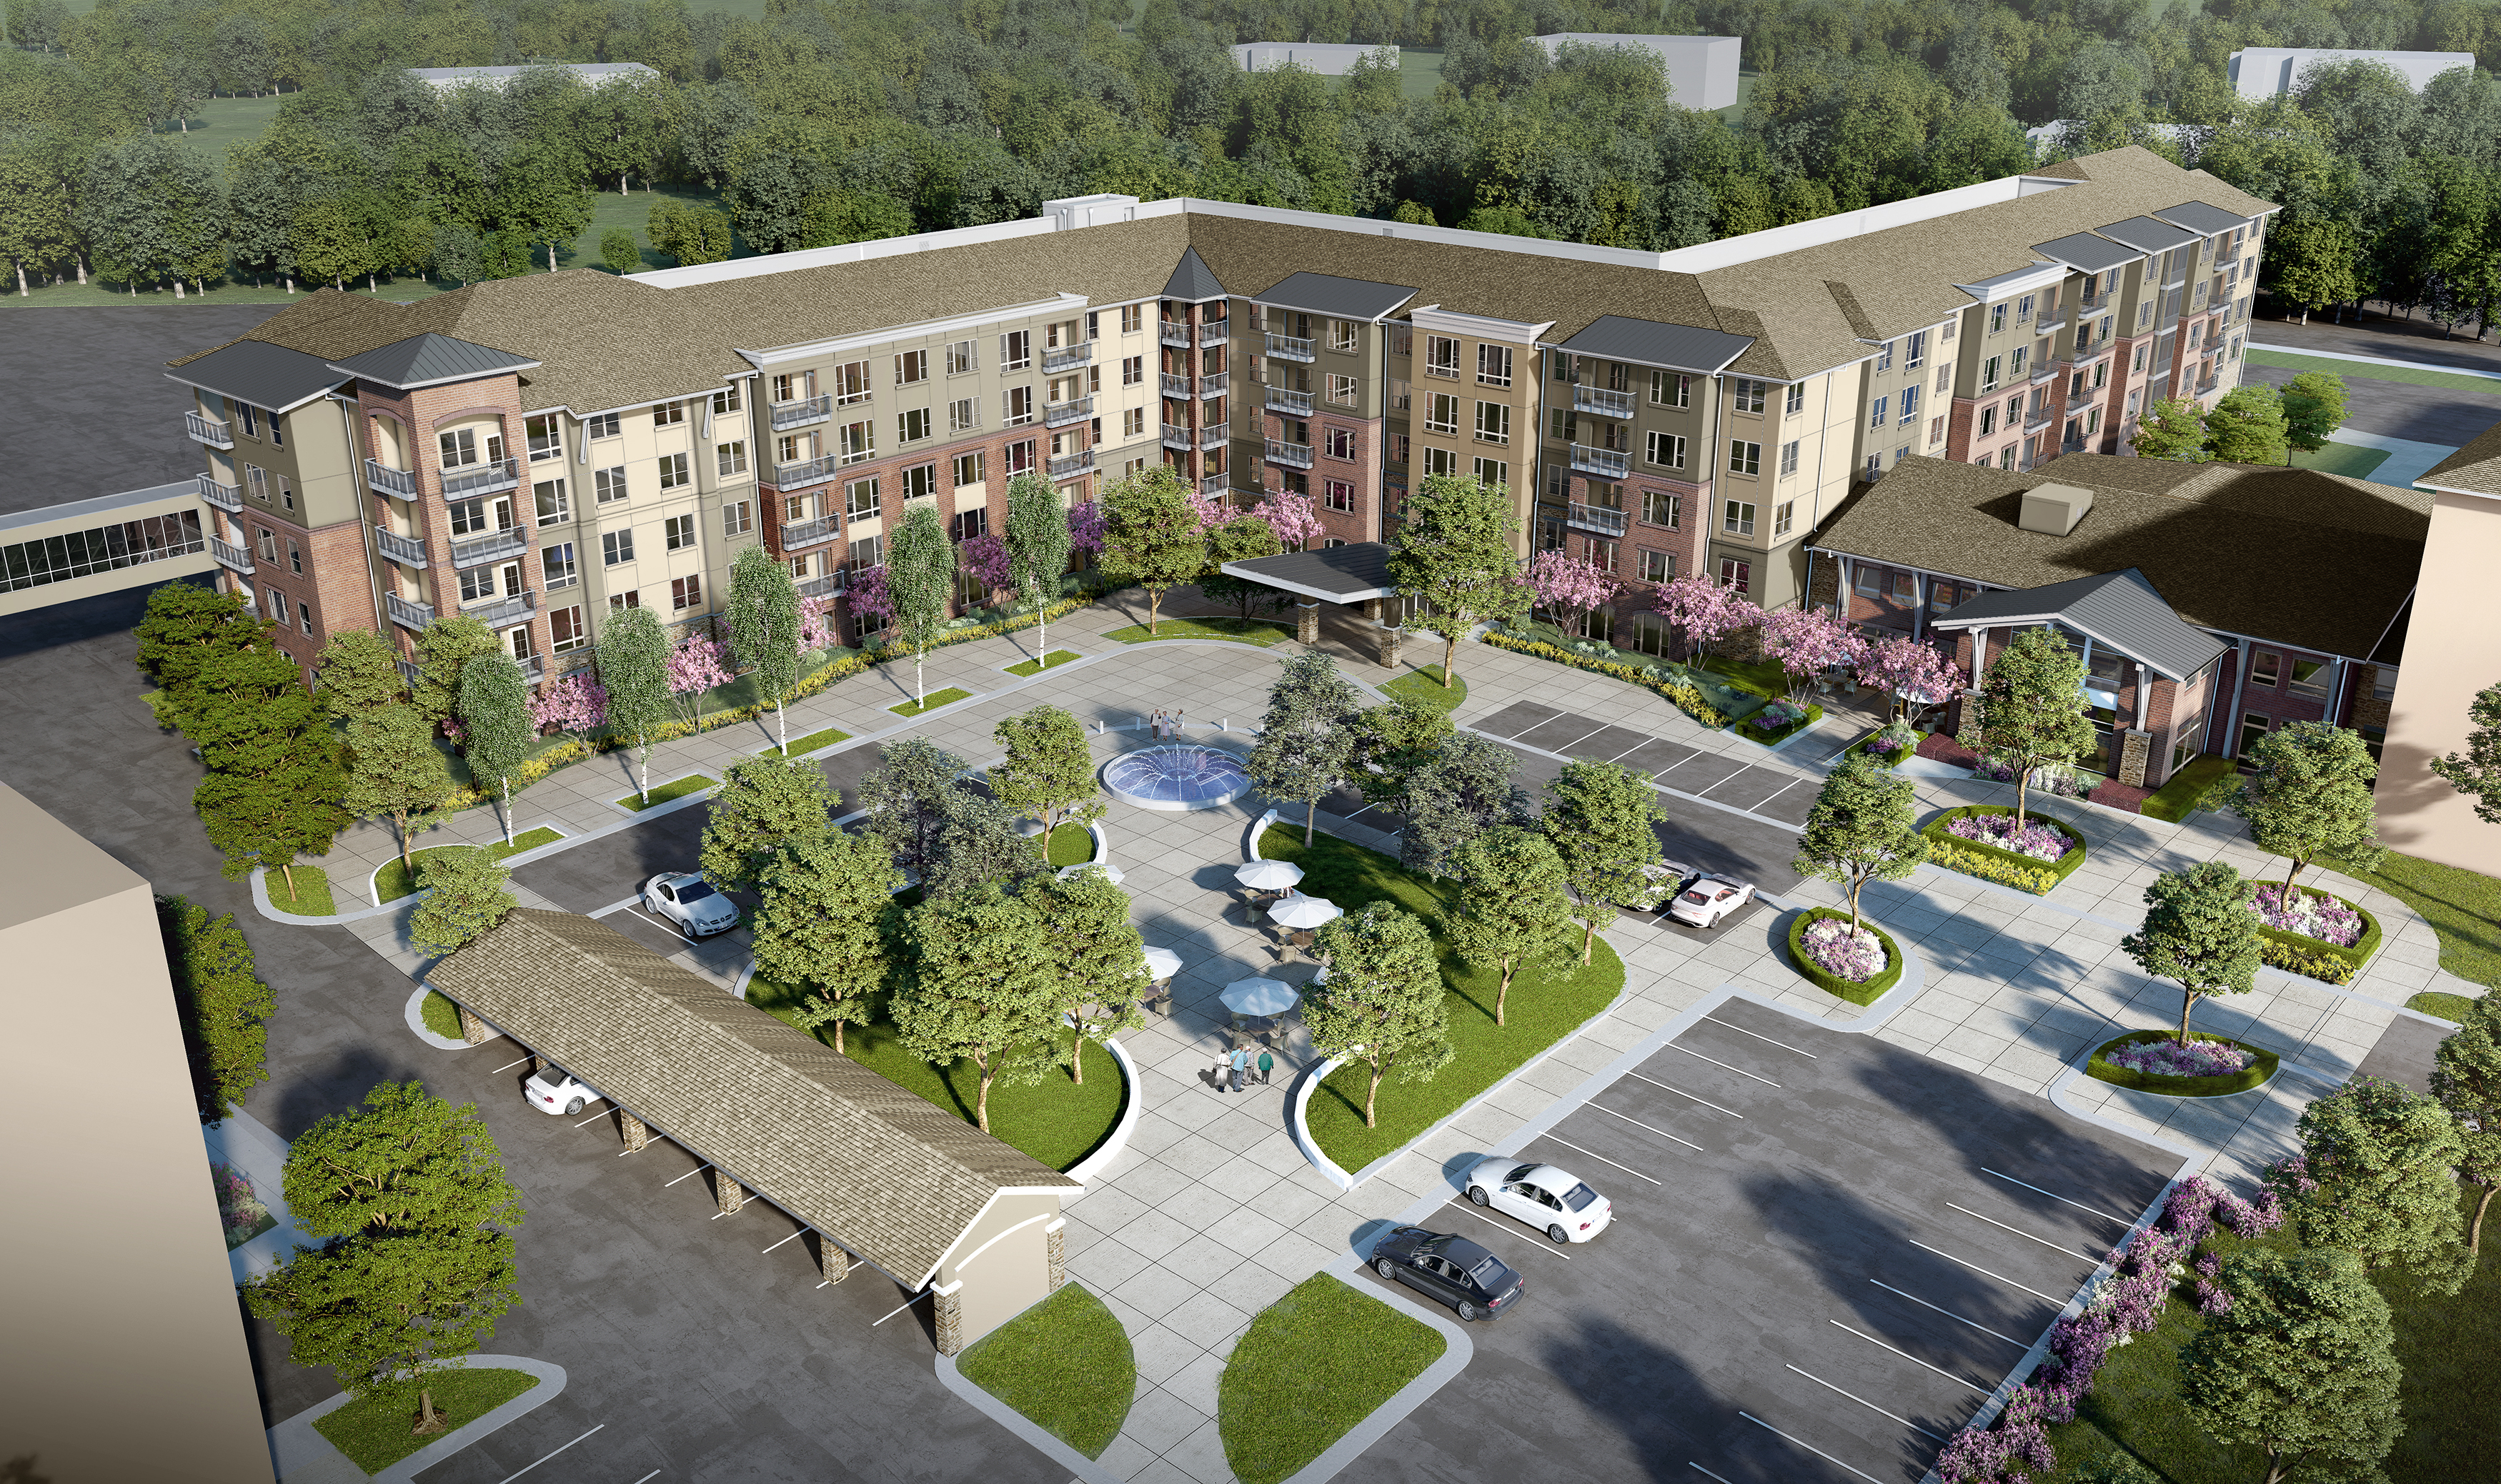 Tallgrass Creek Adds New Building to Meet Demand for Active Retirement Lifestyle